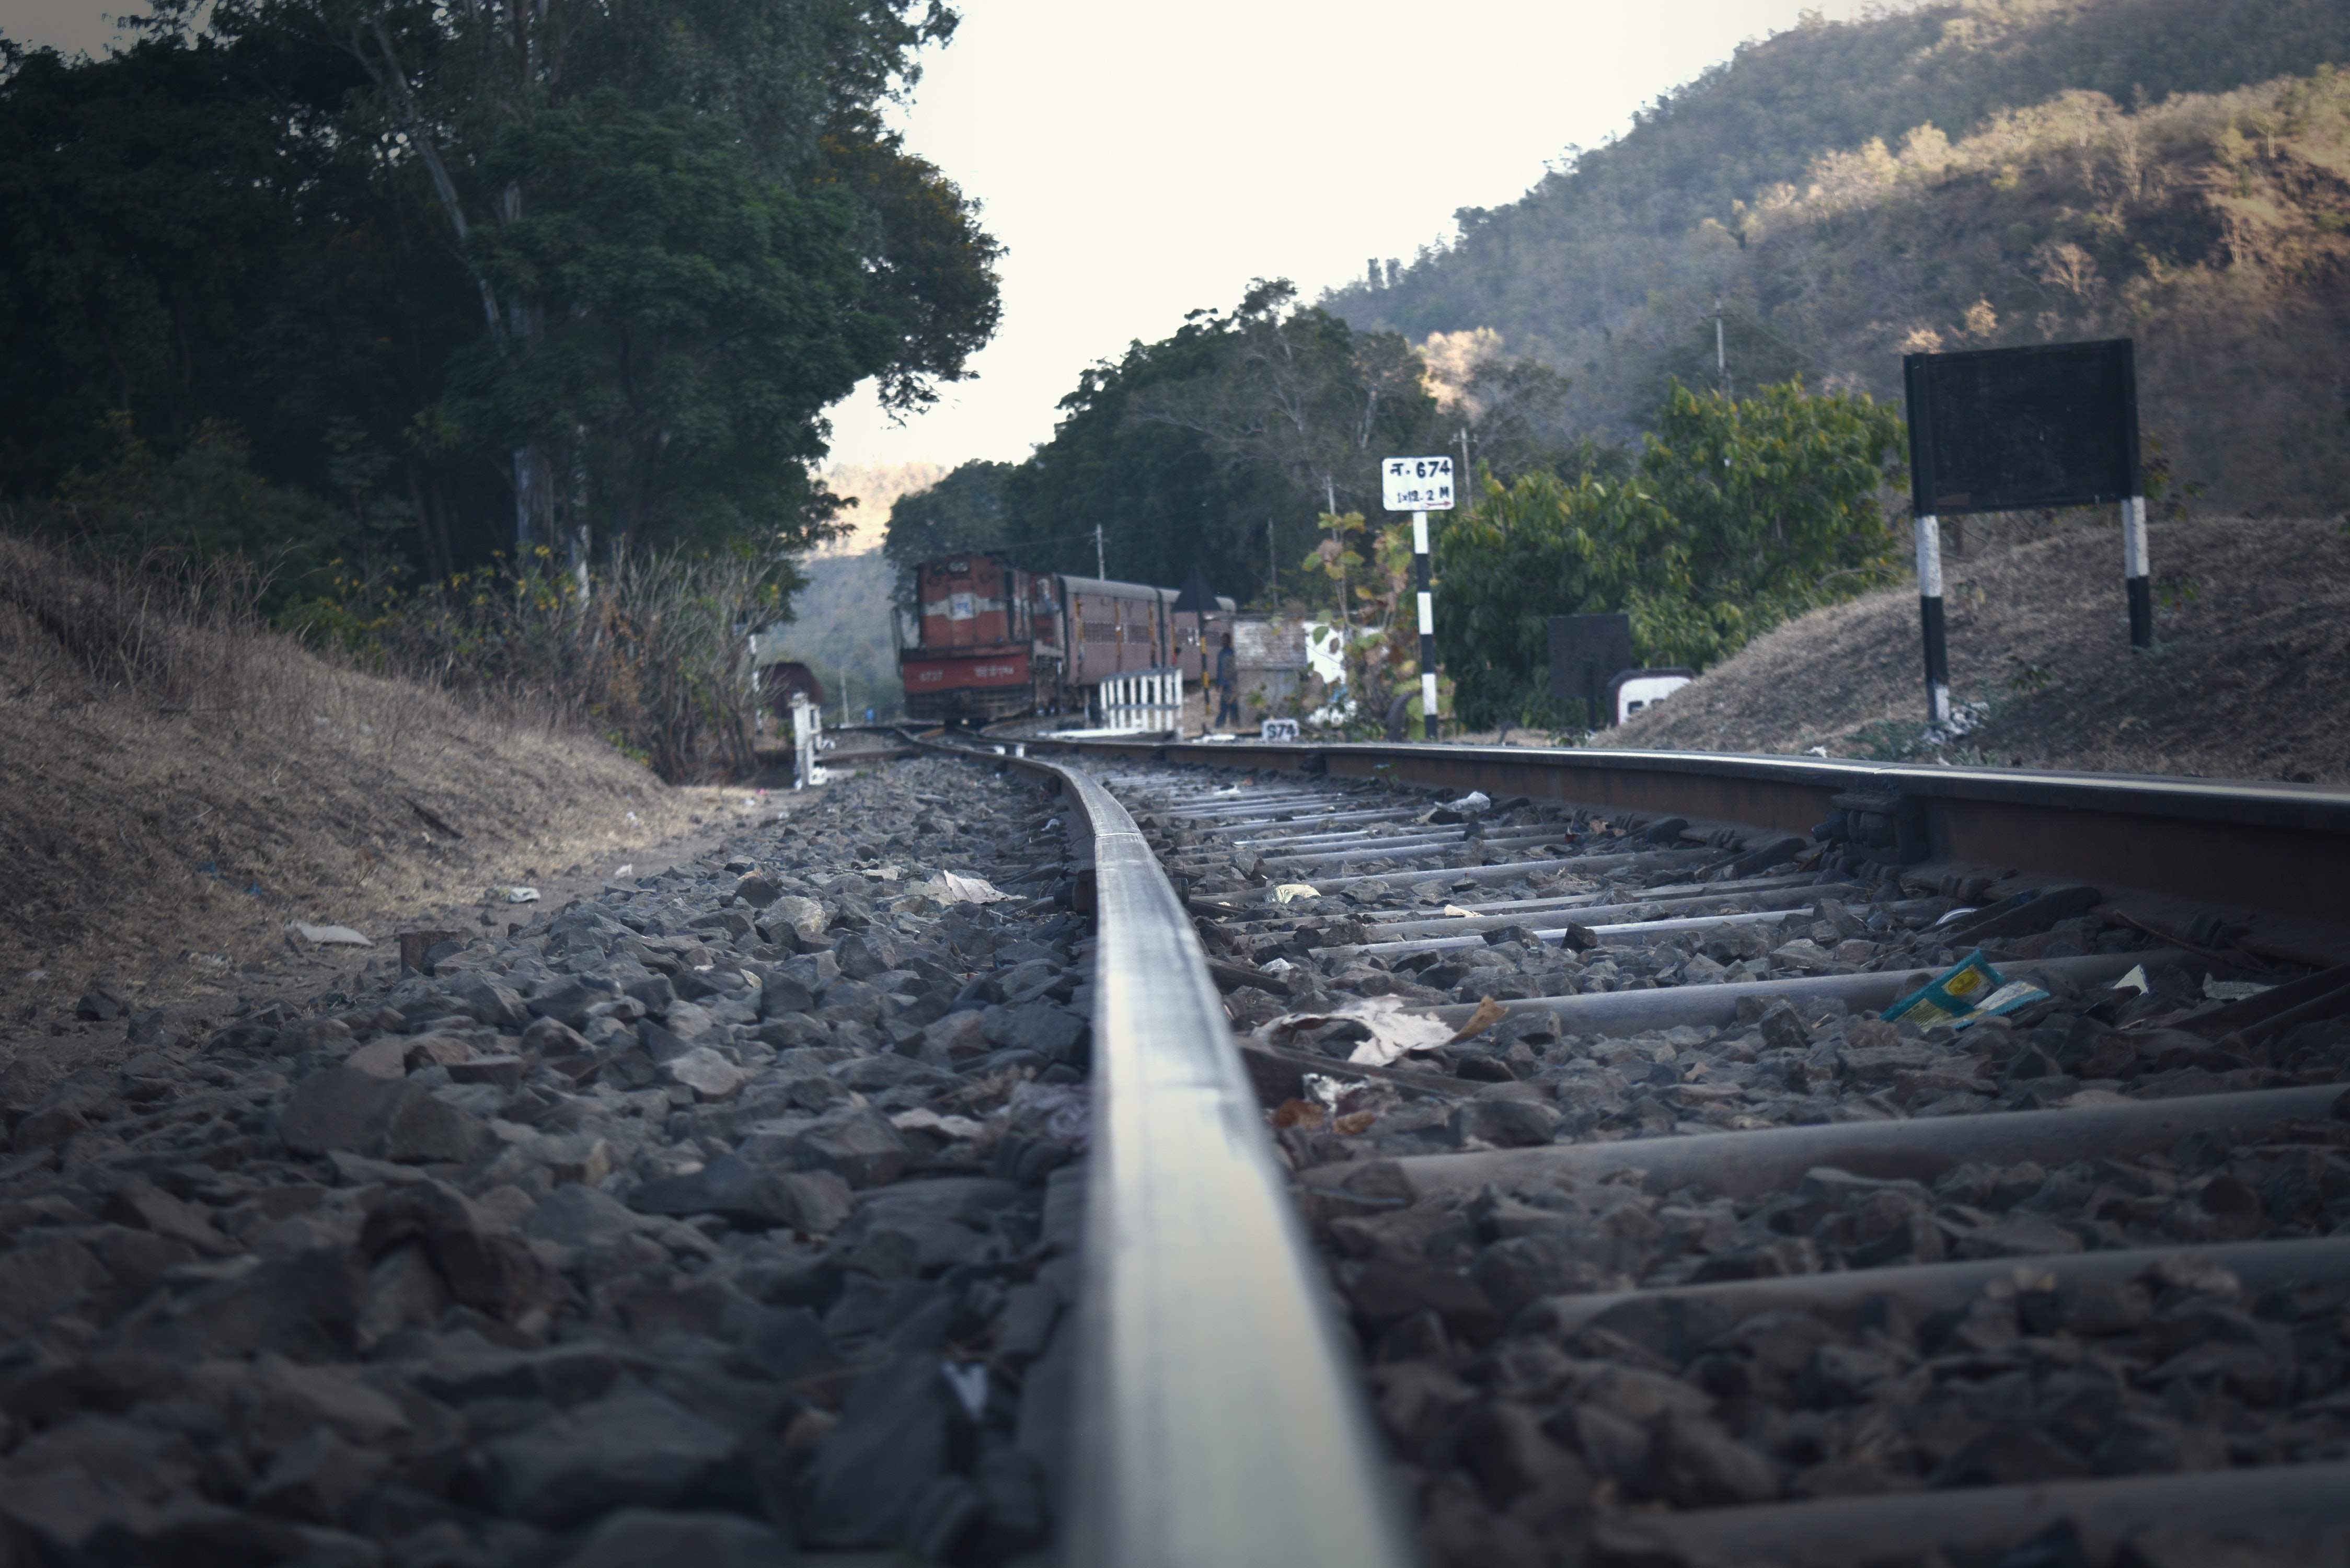 Railroad Tracks Amidst Trees Against Sky, Outdoors, Pebbles, Perspective, Railroad, HQ Photo